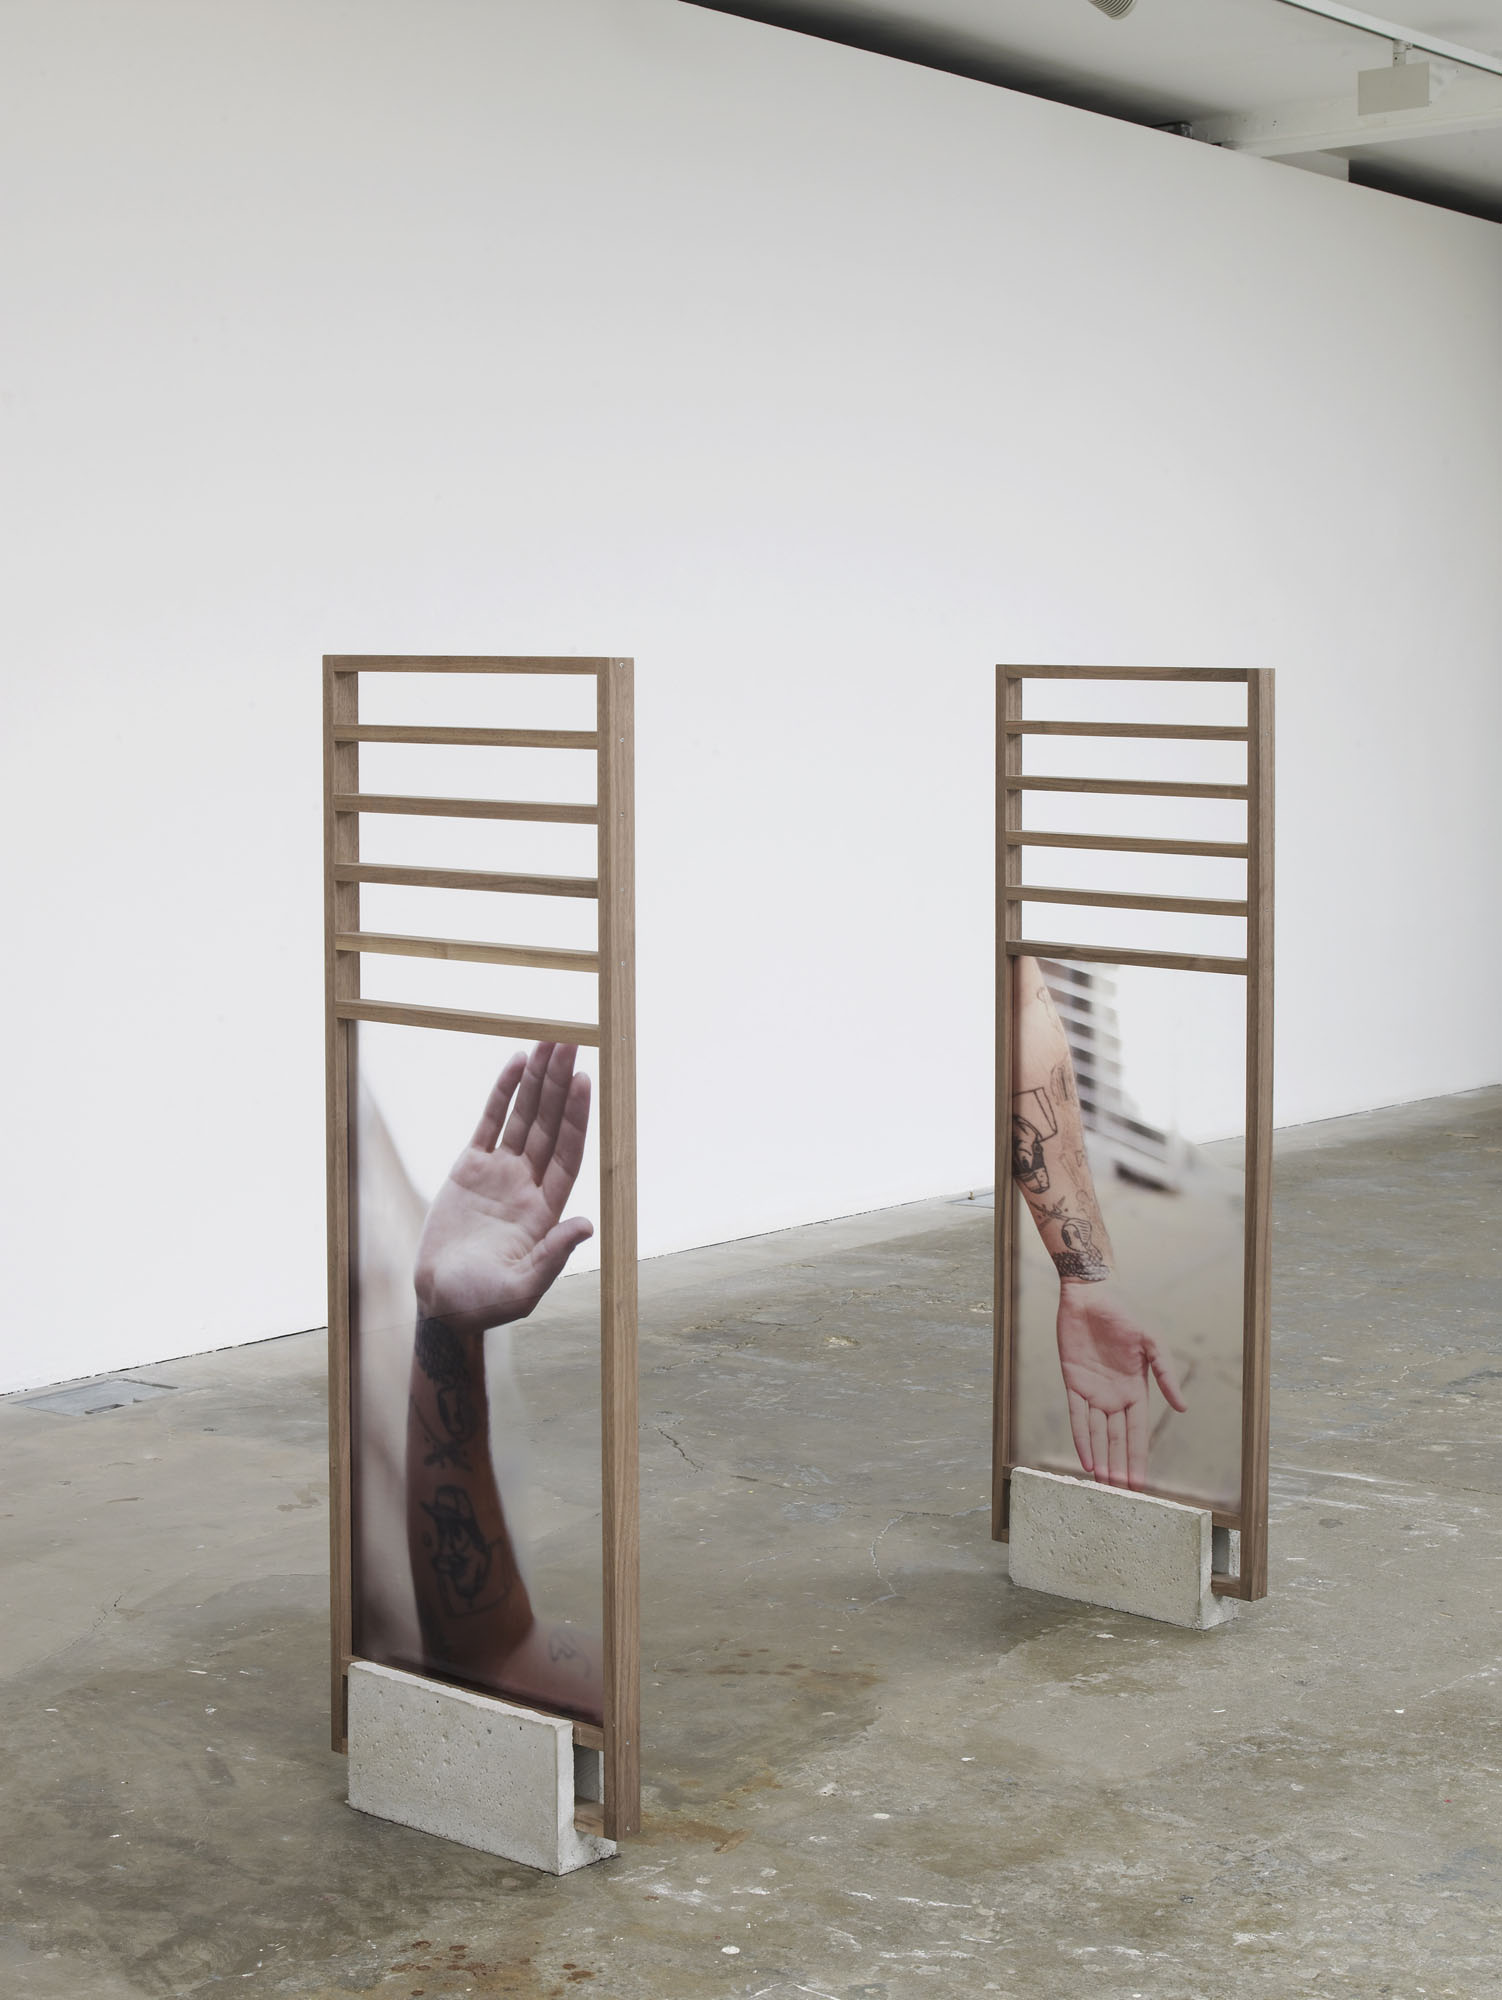 High 5 and Low 5, 2016